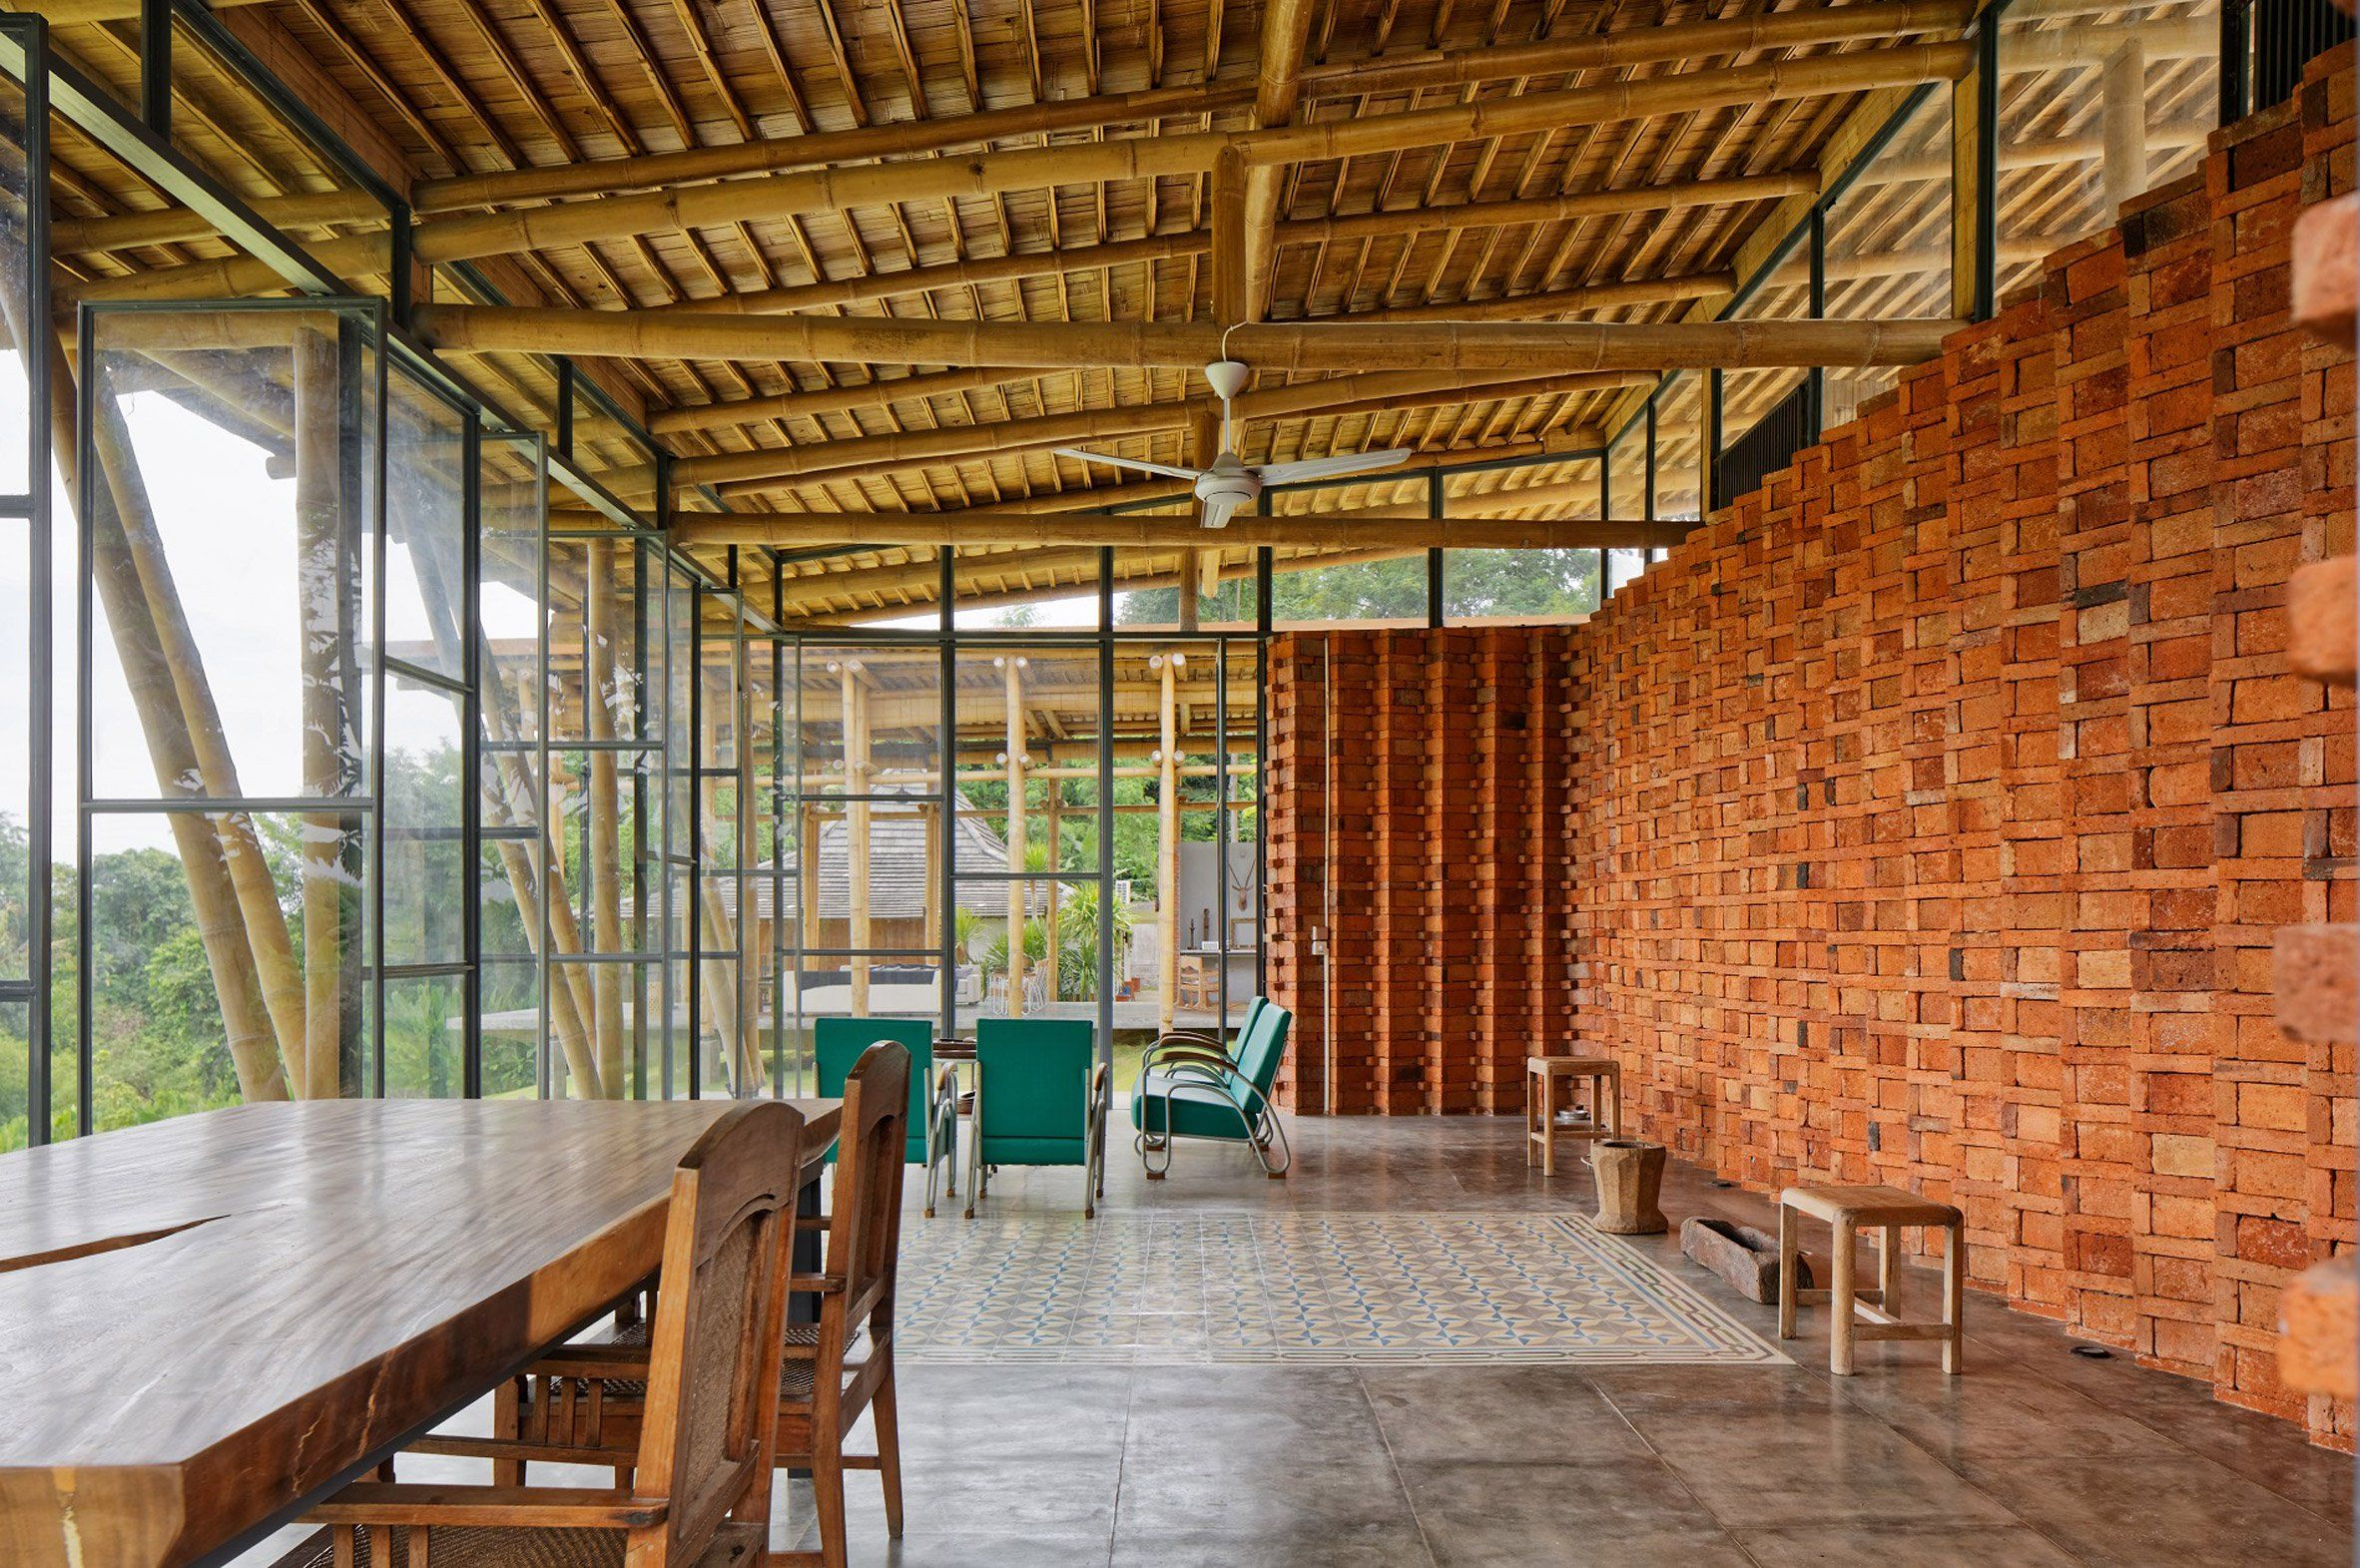 Bamboo Construction Is Used To Create A Complex Roof Incorporating